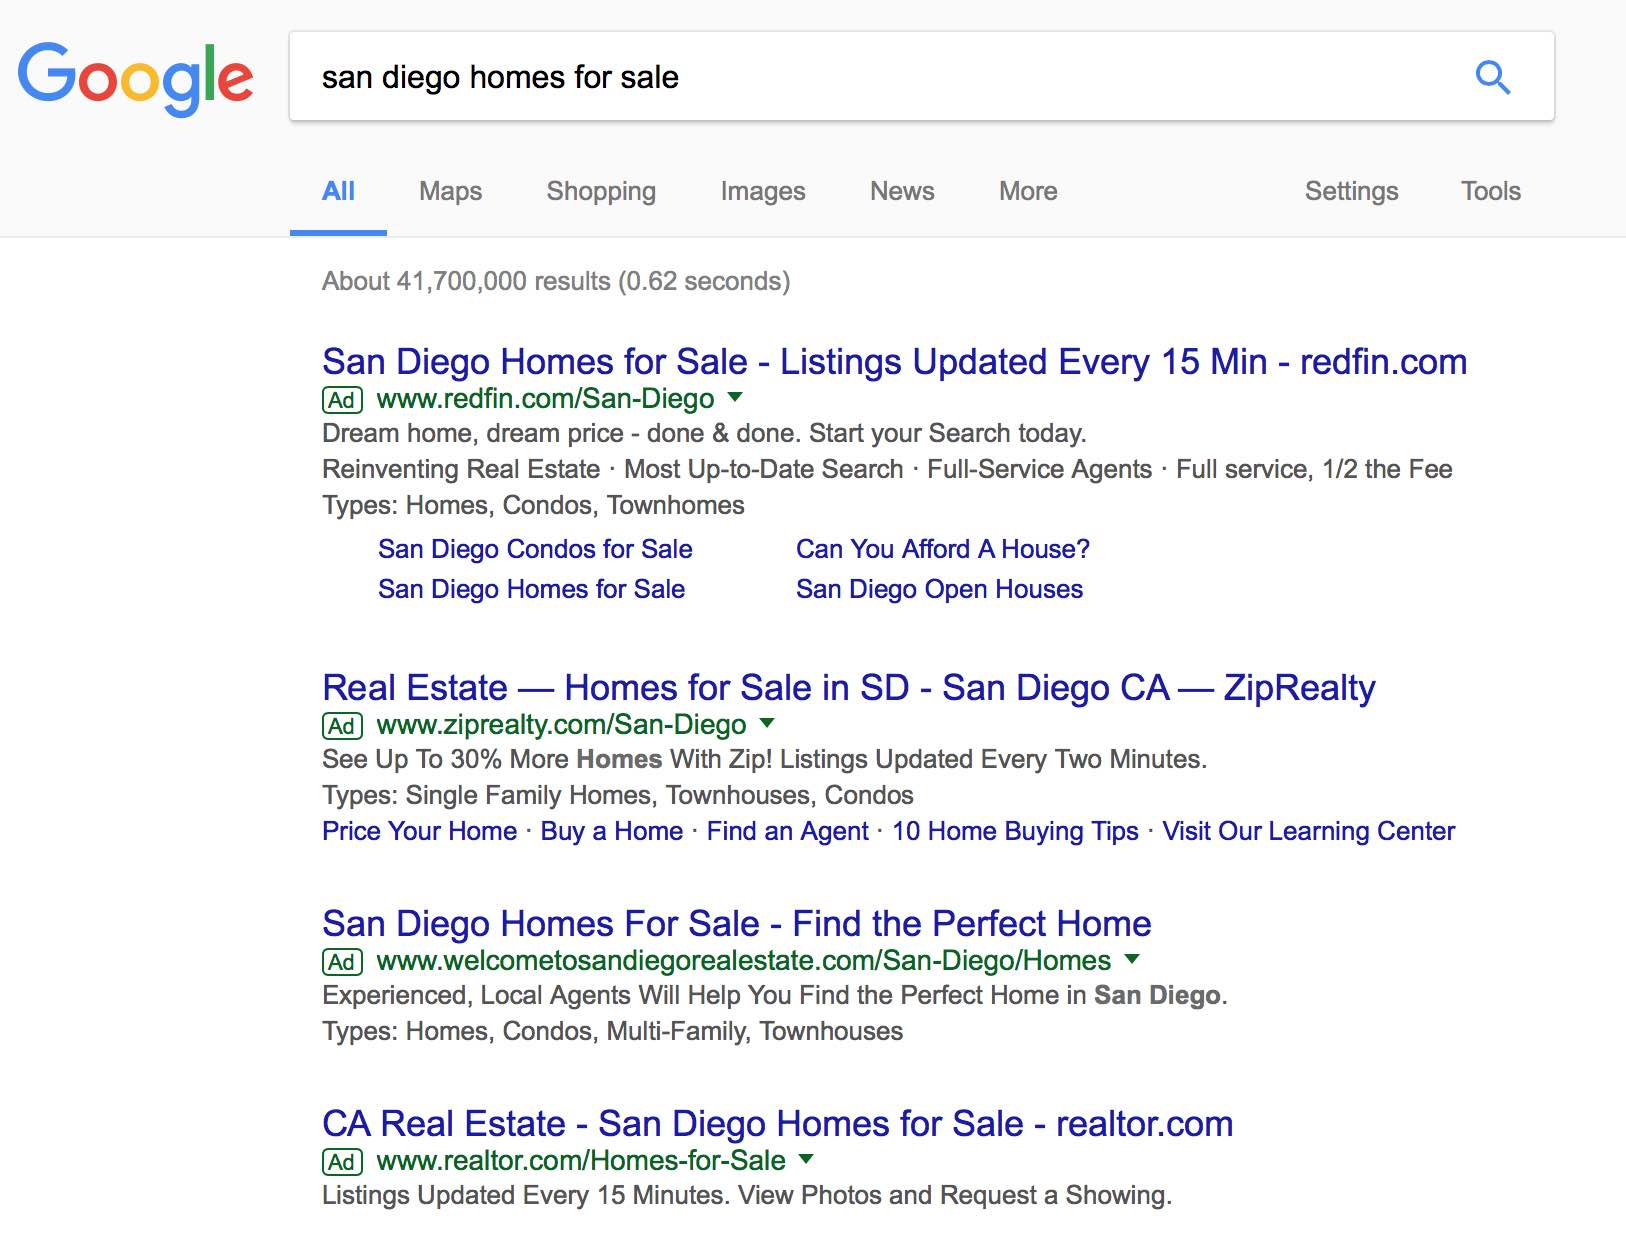 Google search engine results page shows ads in top position for san diego homes for sale